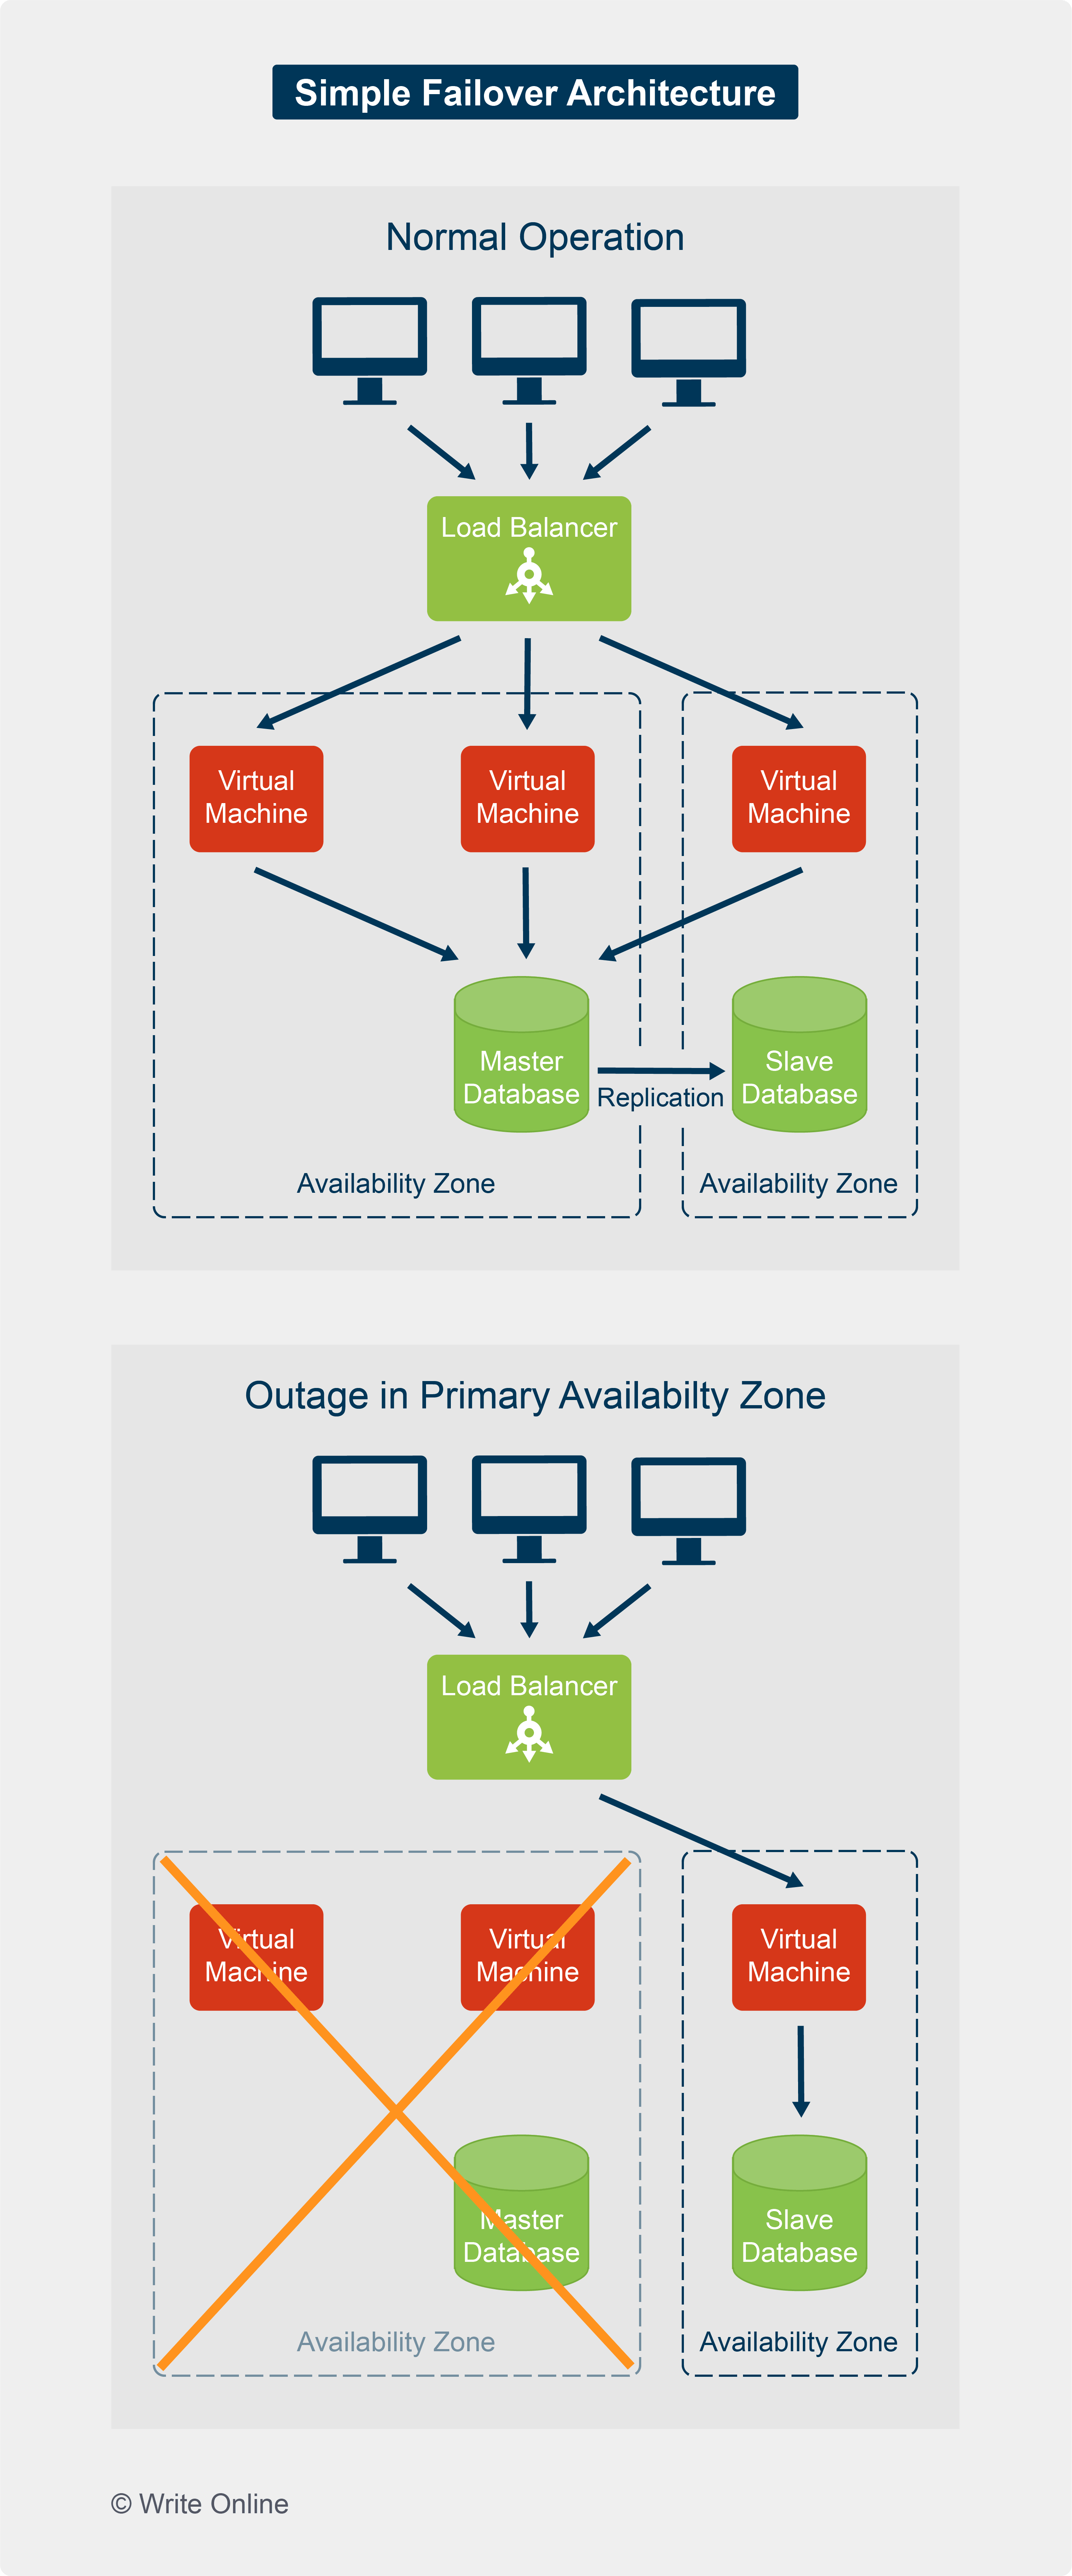 Behaviour of a Simple Failover System under Normal Operation and during an Outage